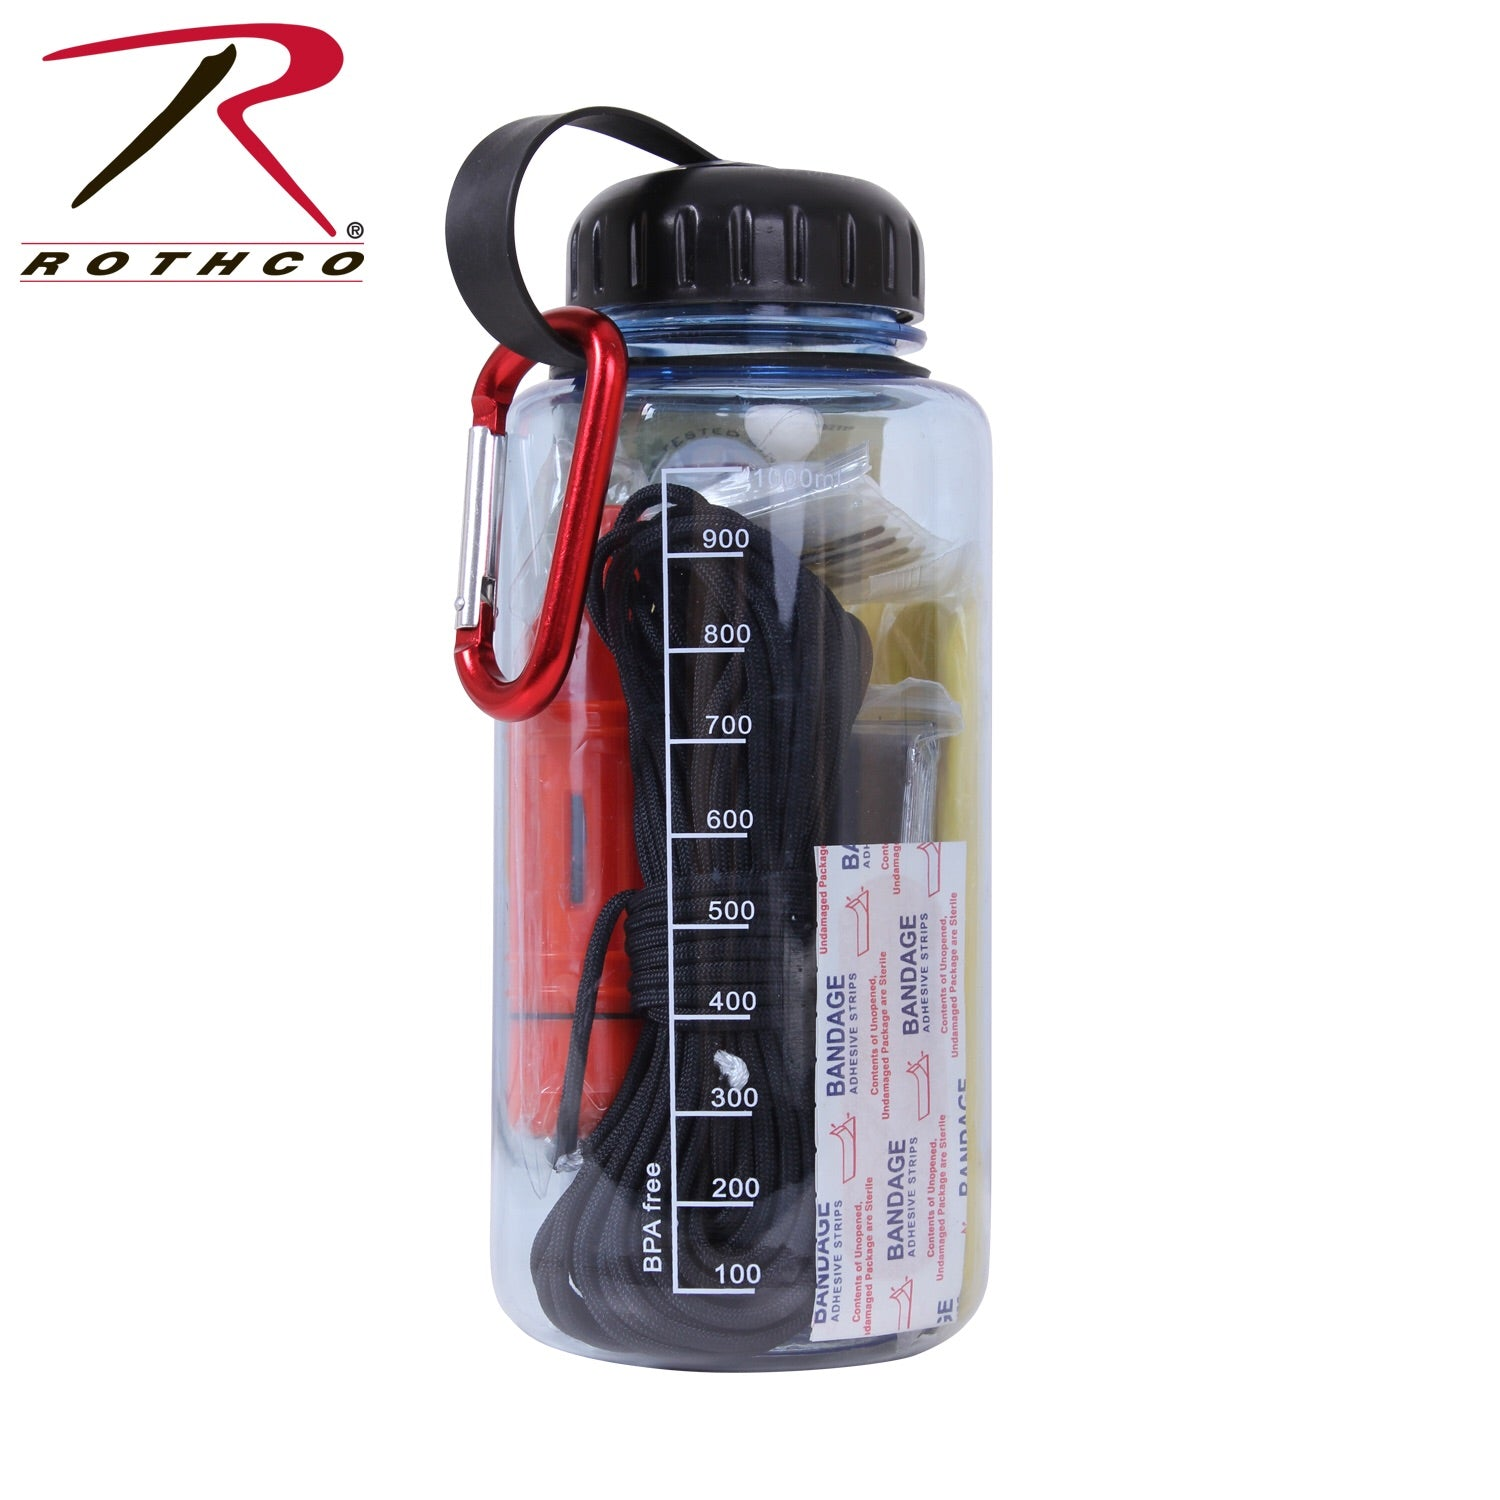 Rothco Water Bottle/Survival Kit